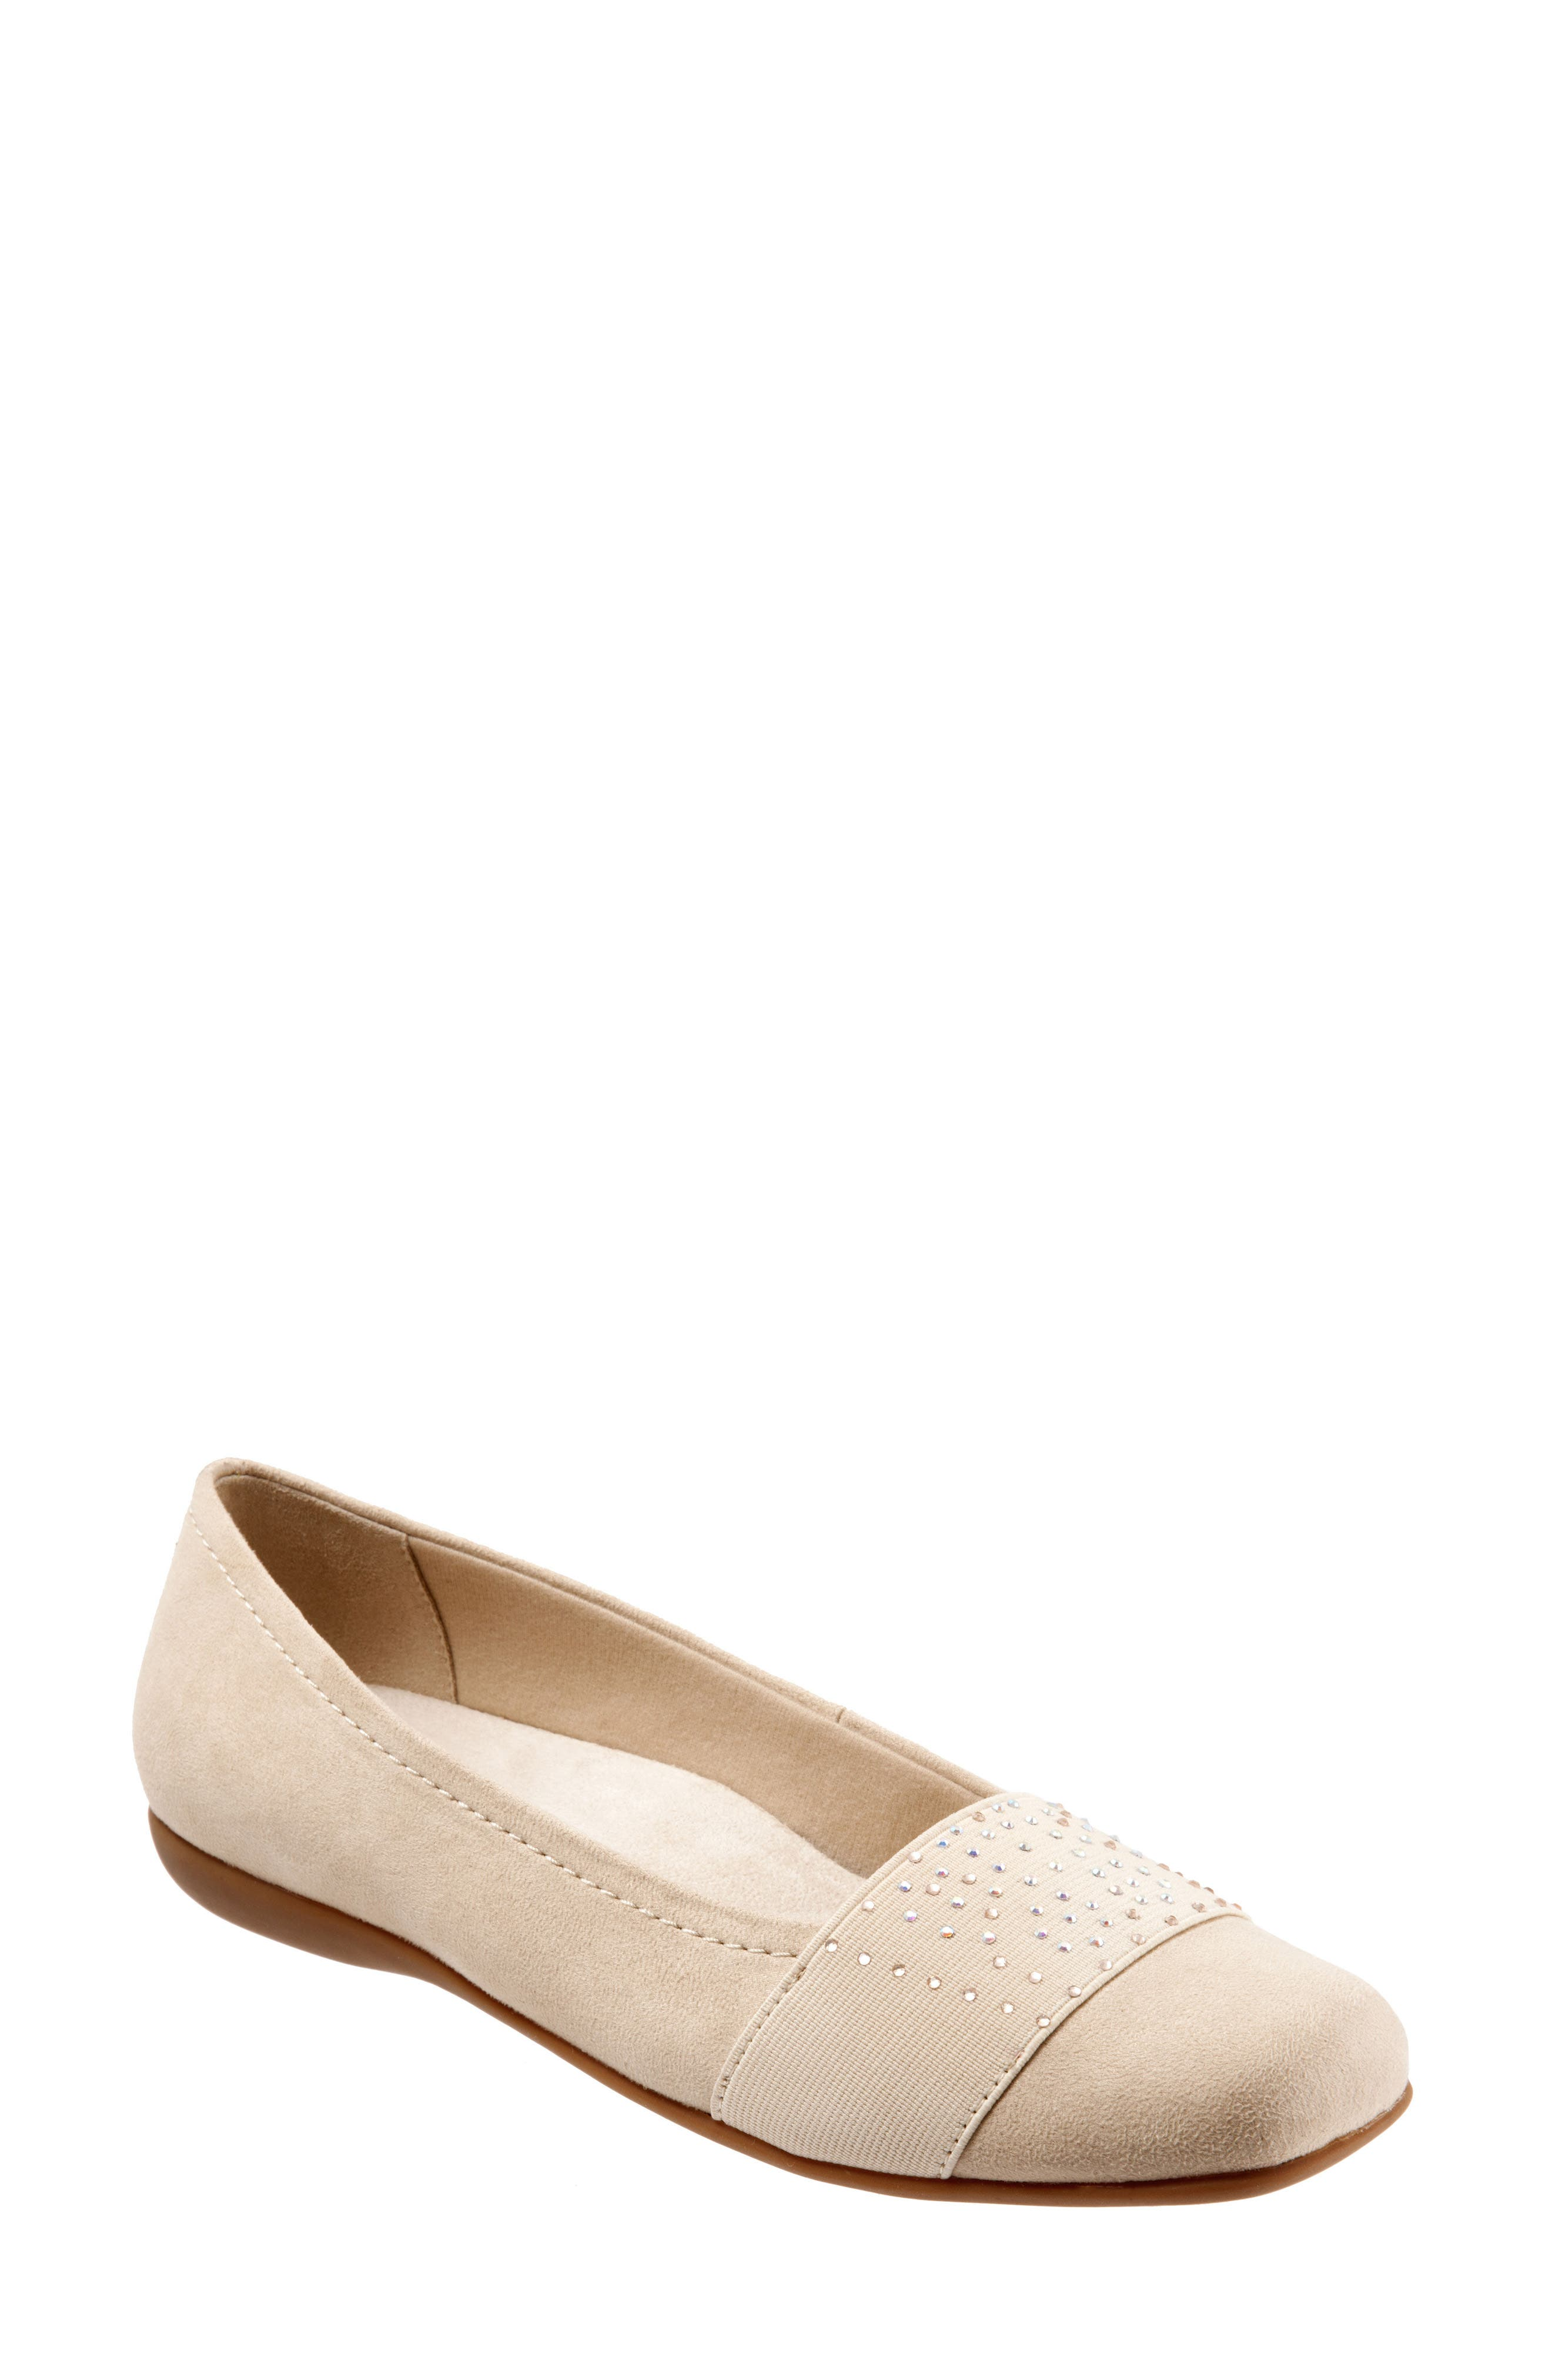 Samantha Flat,                         Main,                         color, Nude Suede